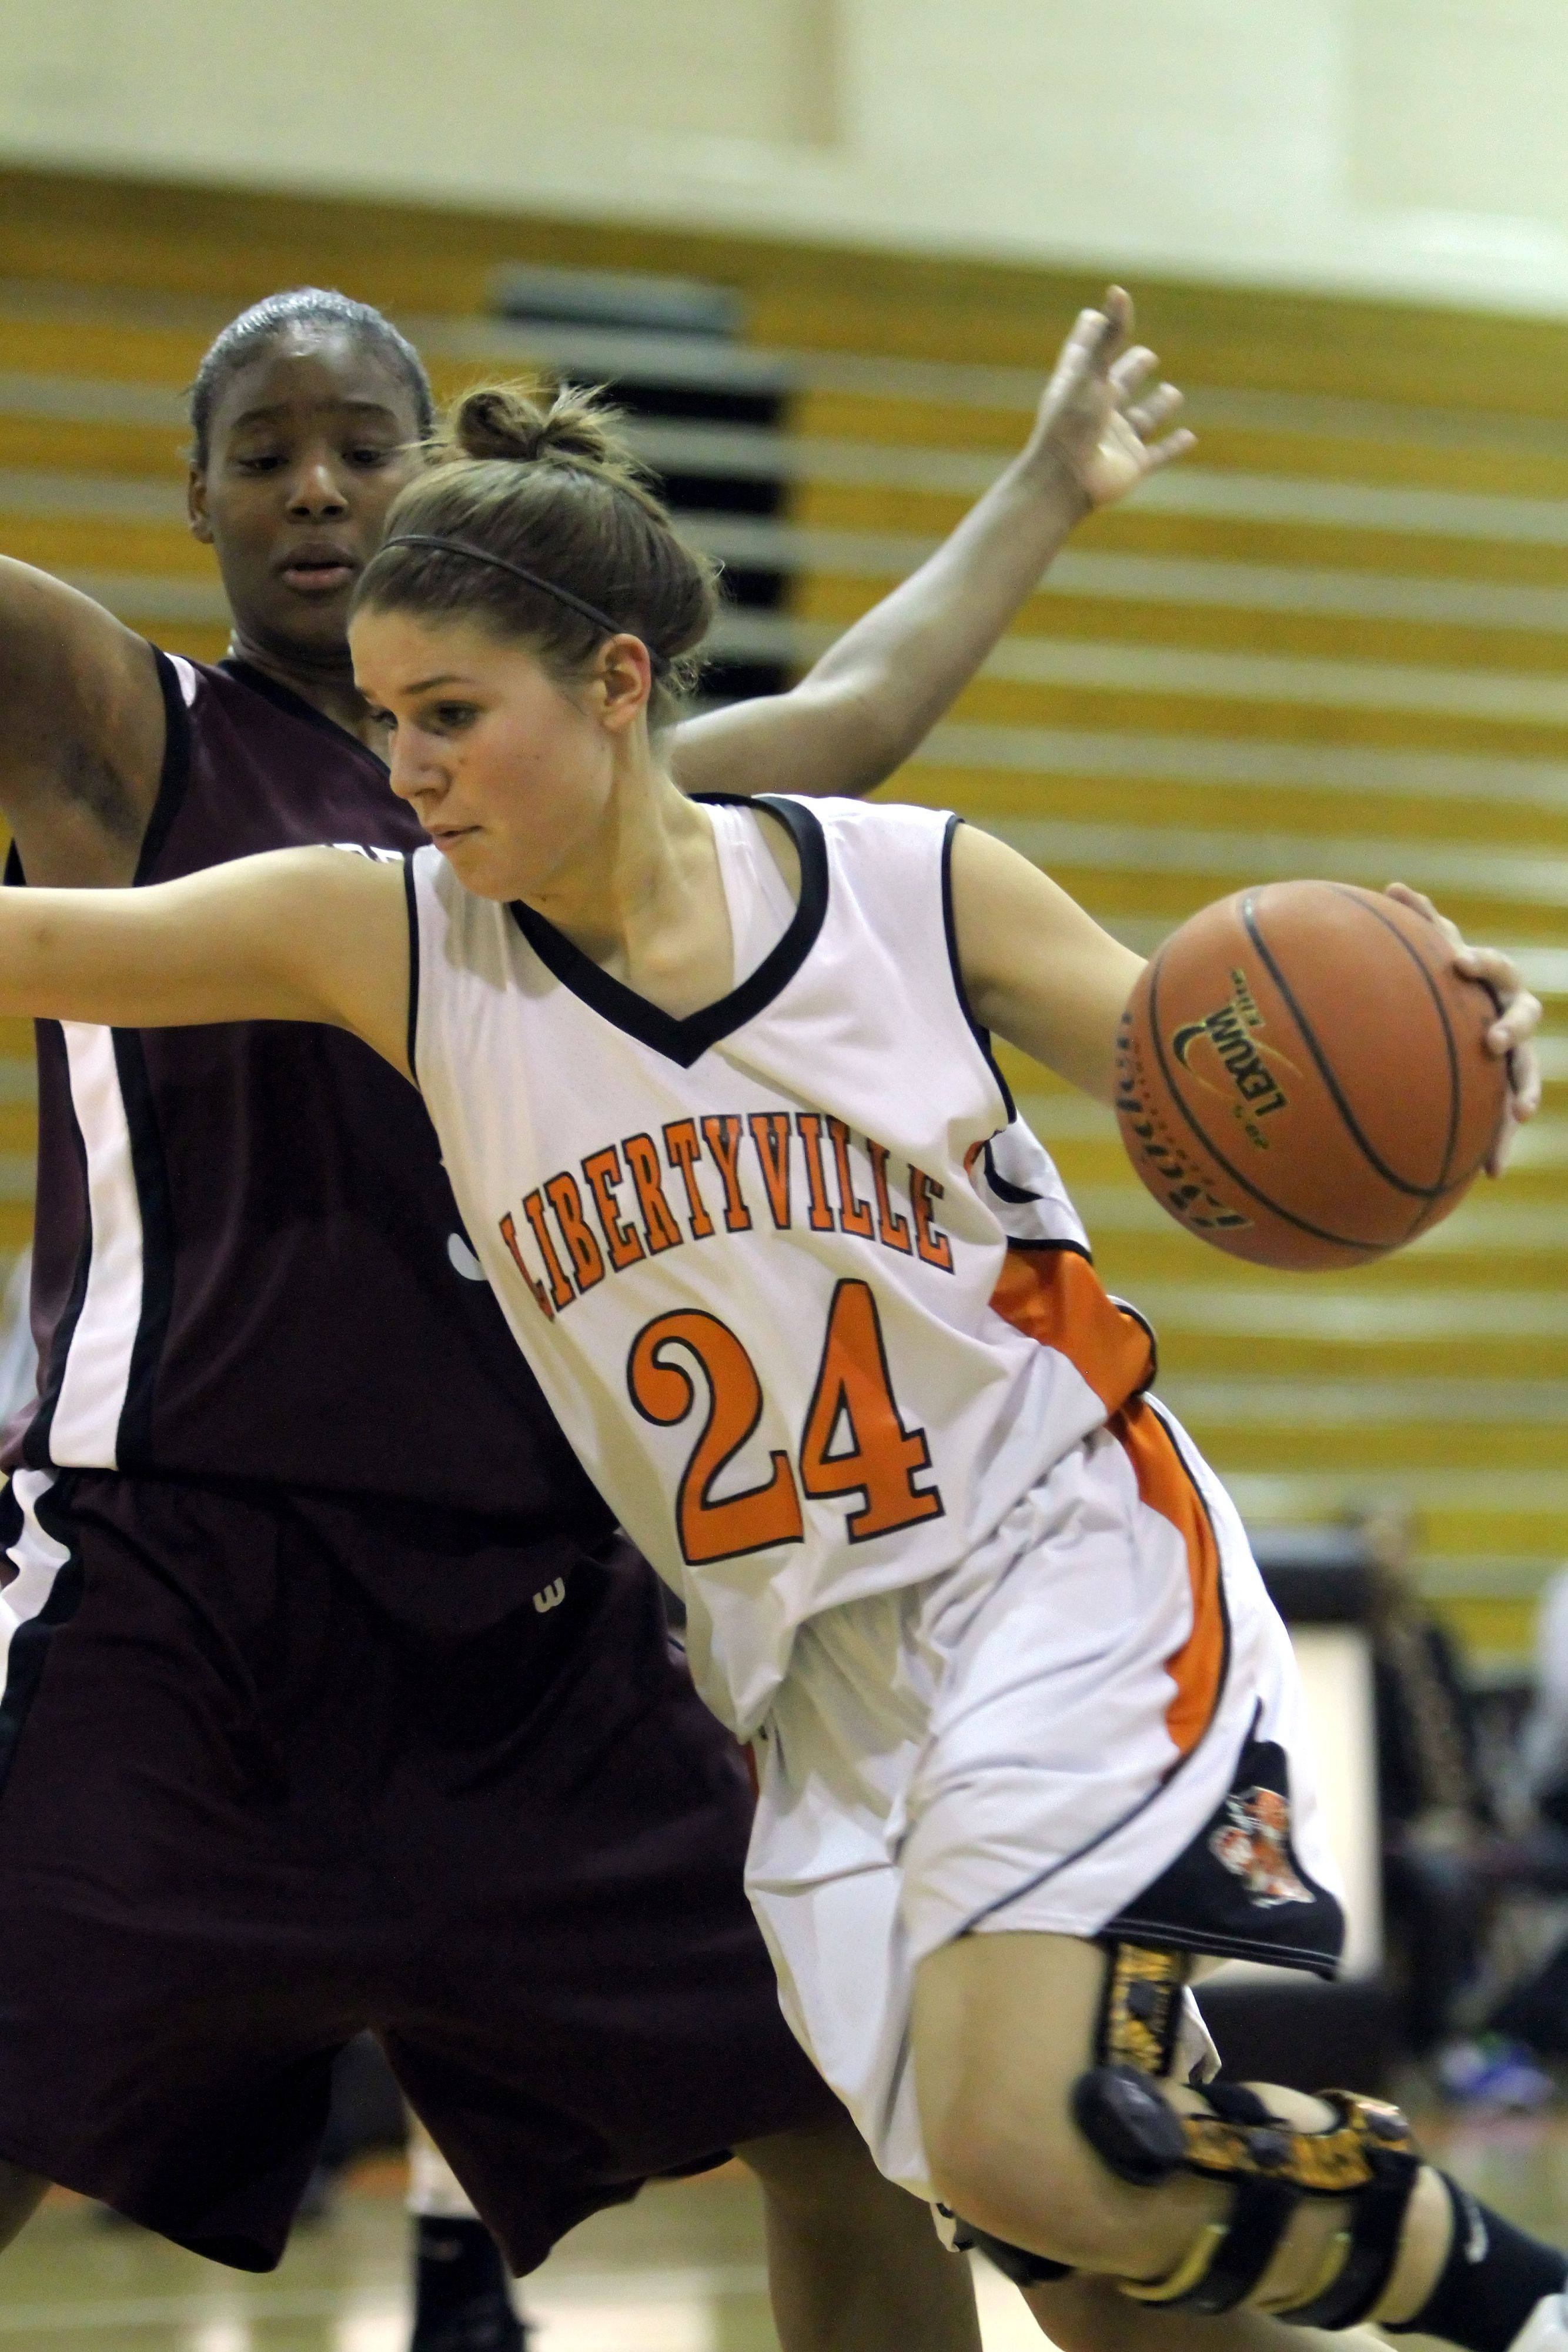 Libertyville's Kaca Savatic, right, drives on Zion's Octavia Crump.